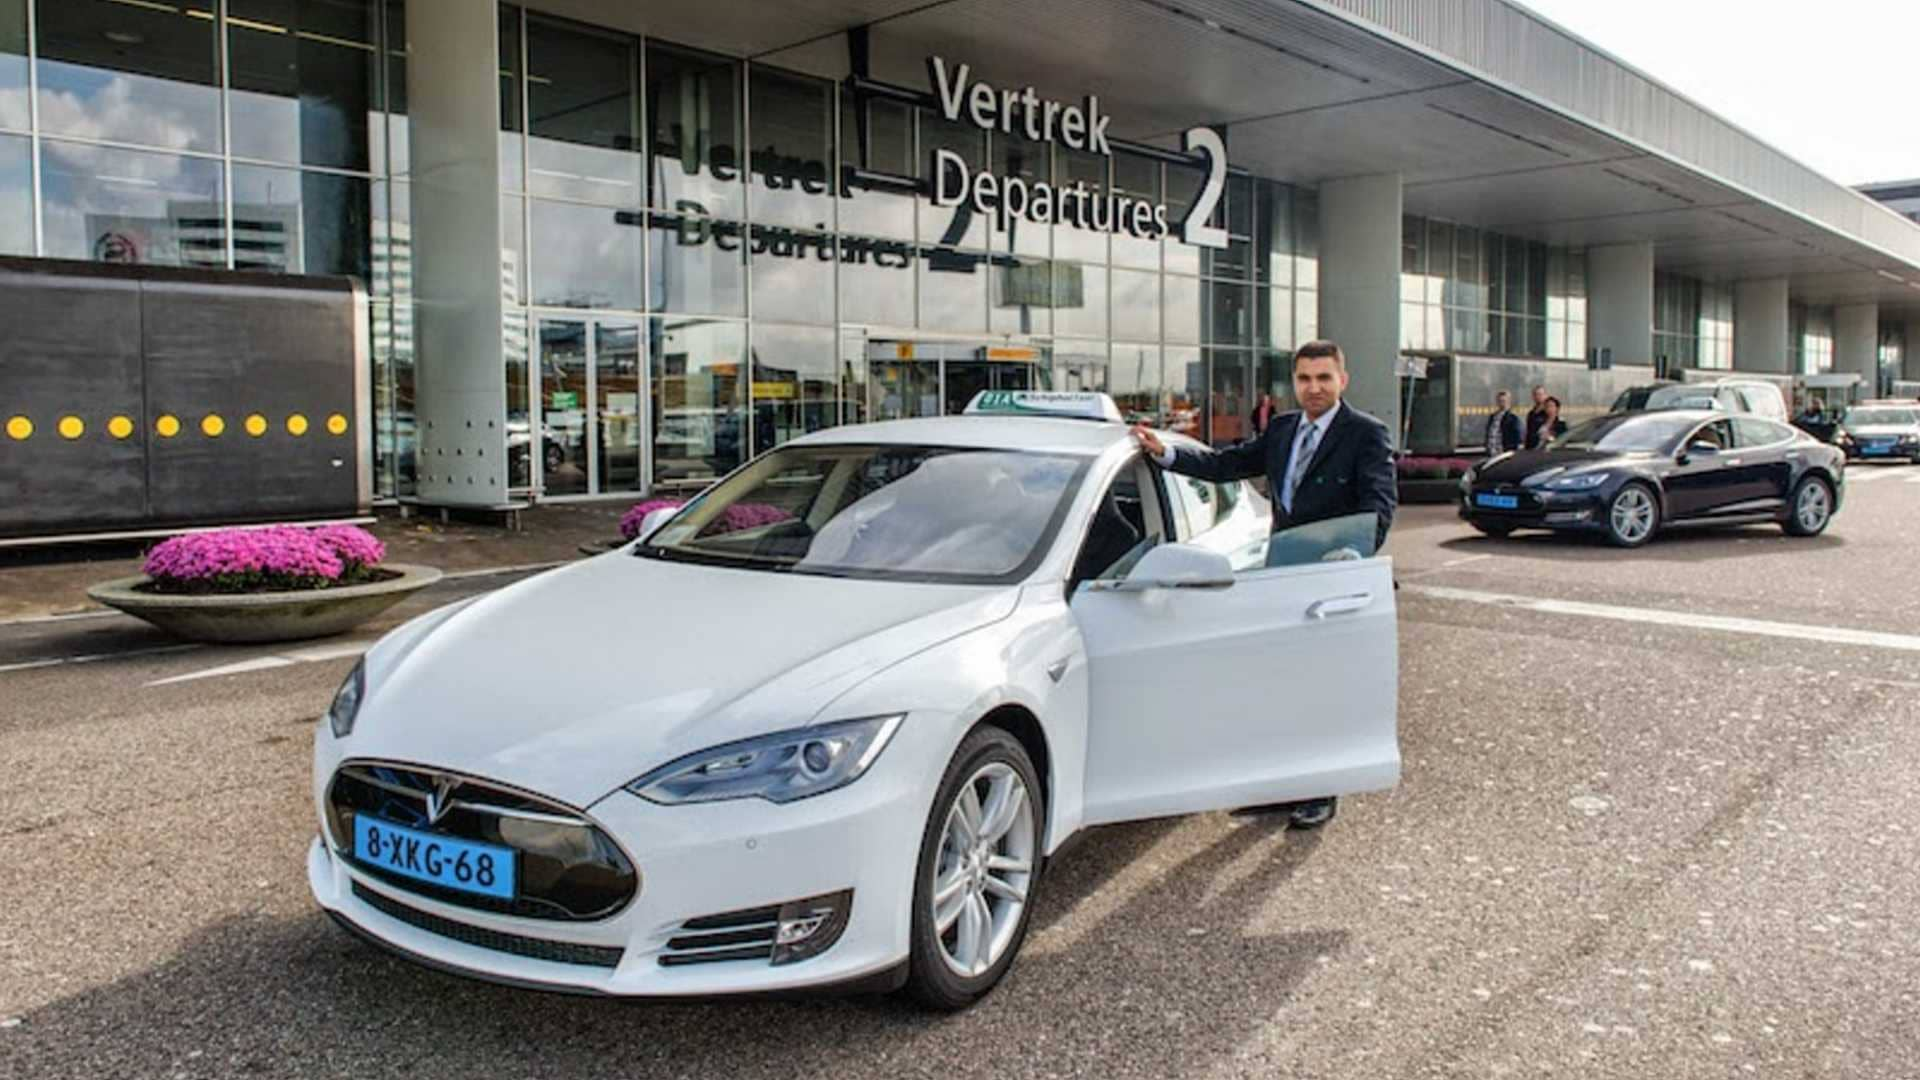 reliability-dutch-taxi-drivers-sue-tesla-for-model-s-problems